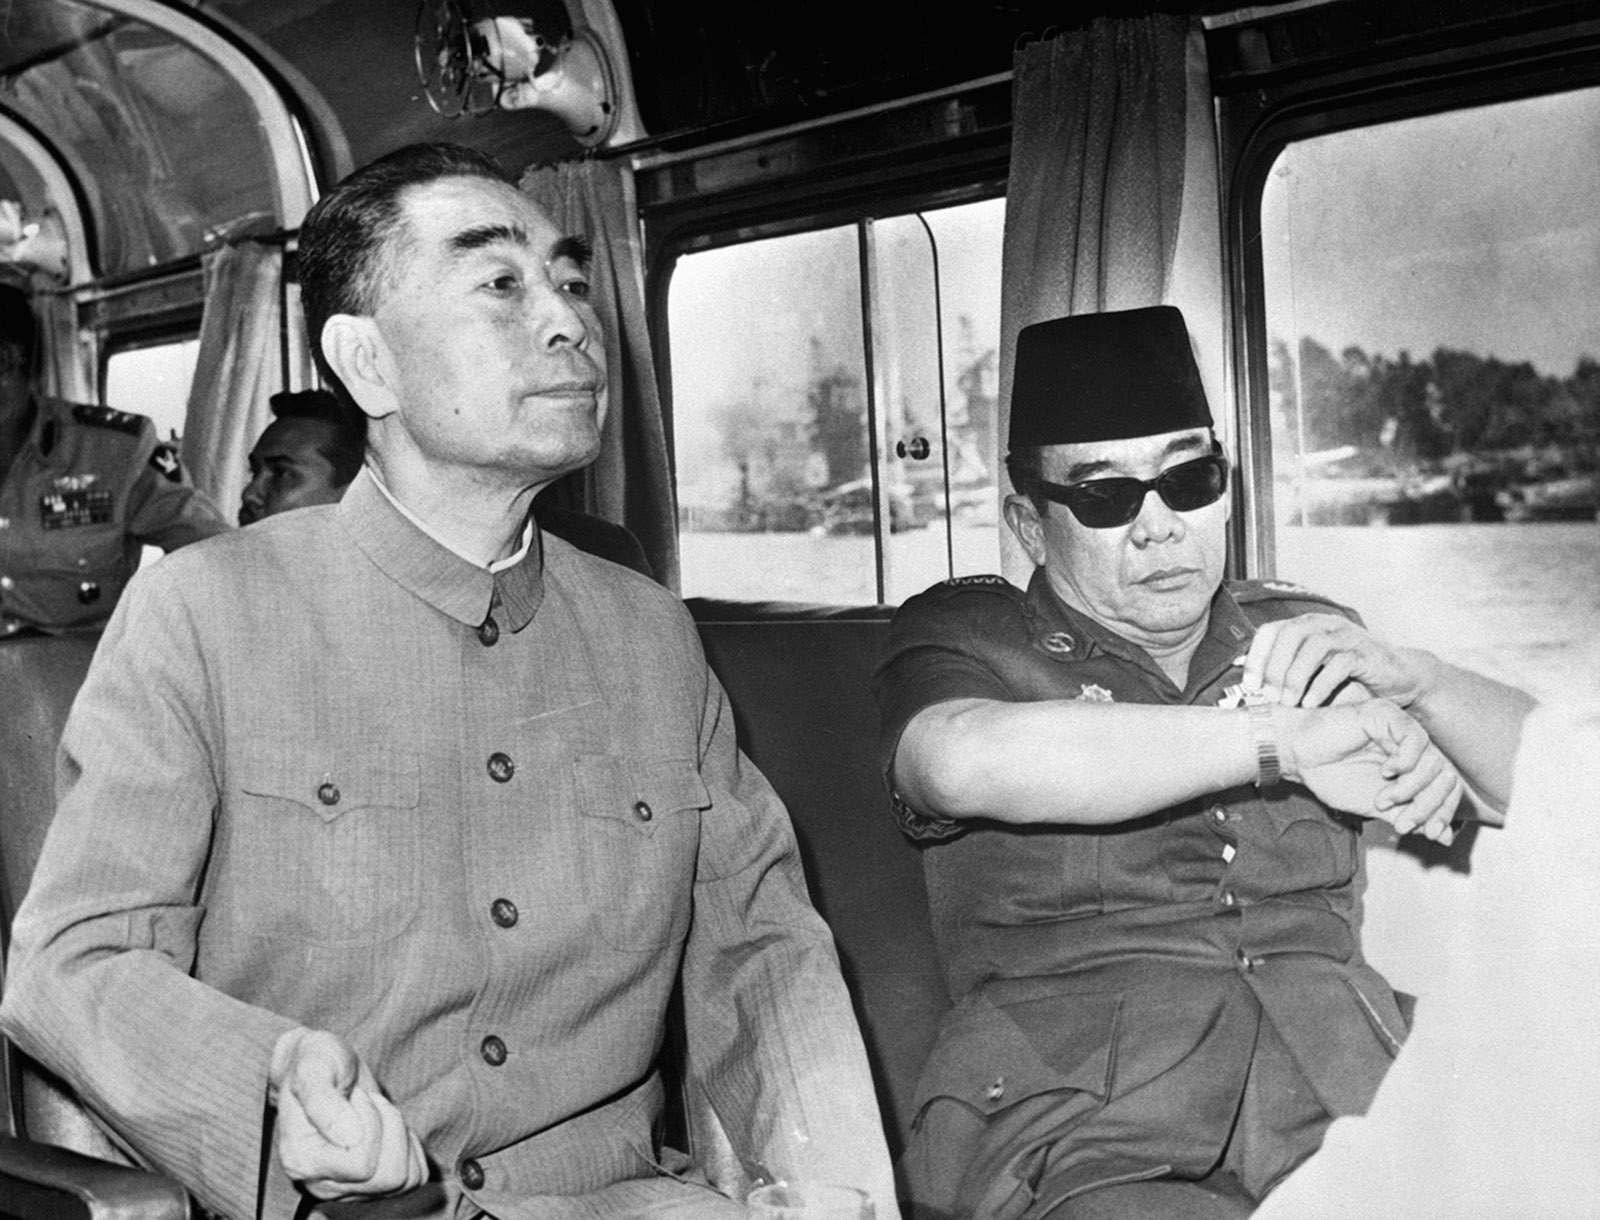 Chinese premier Zhou Enlai and Indonesian president Sukarno aboard a cruise on the Nile River, Cairo, July 1965